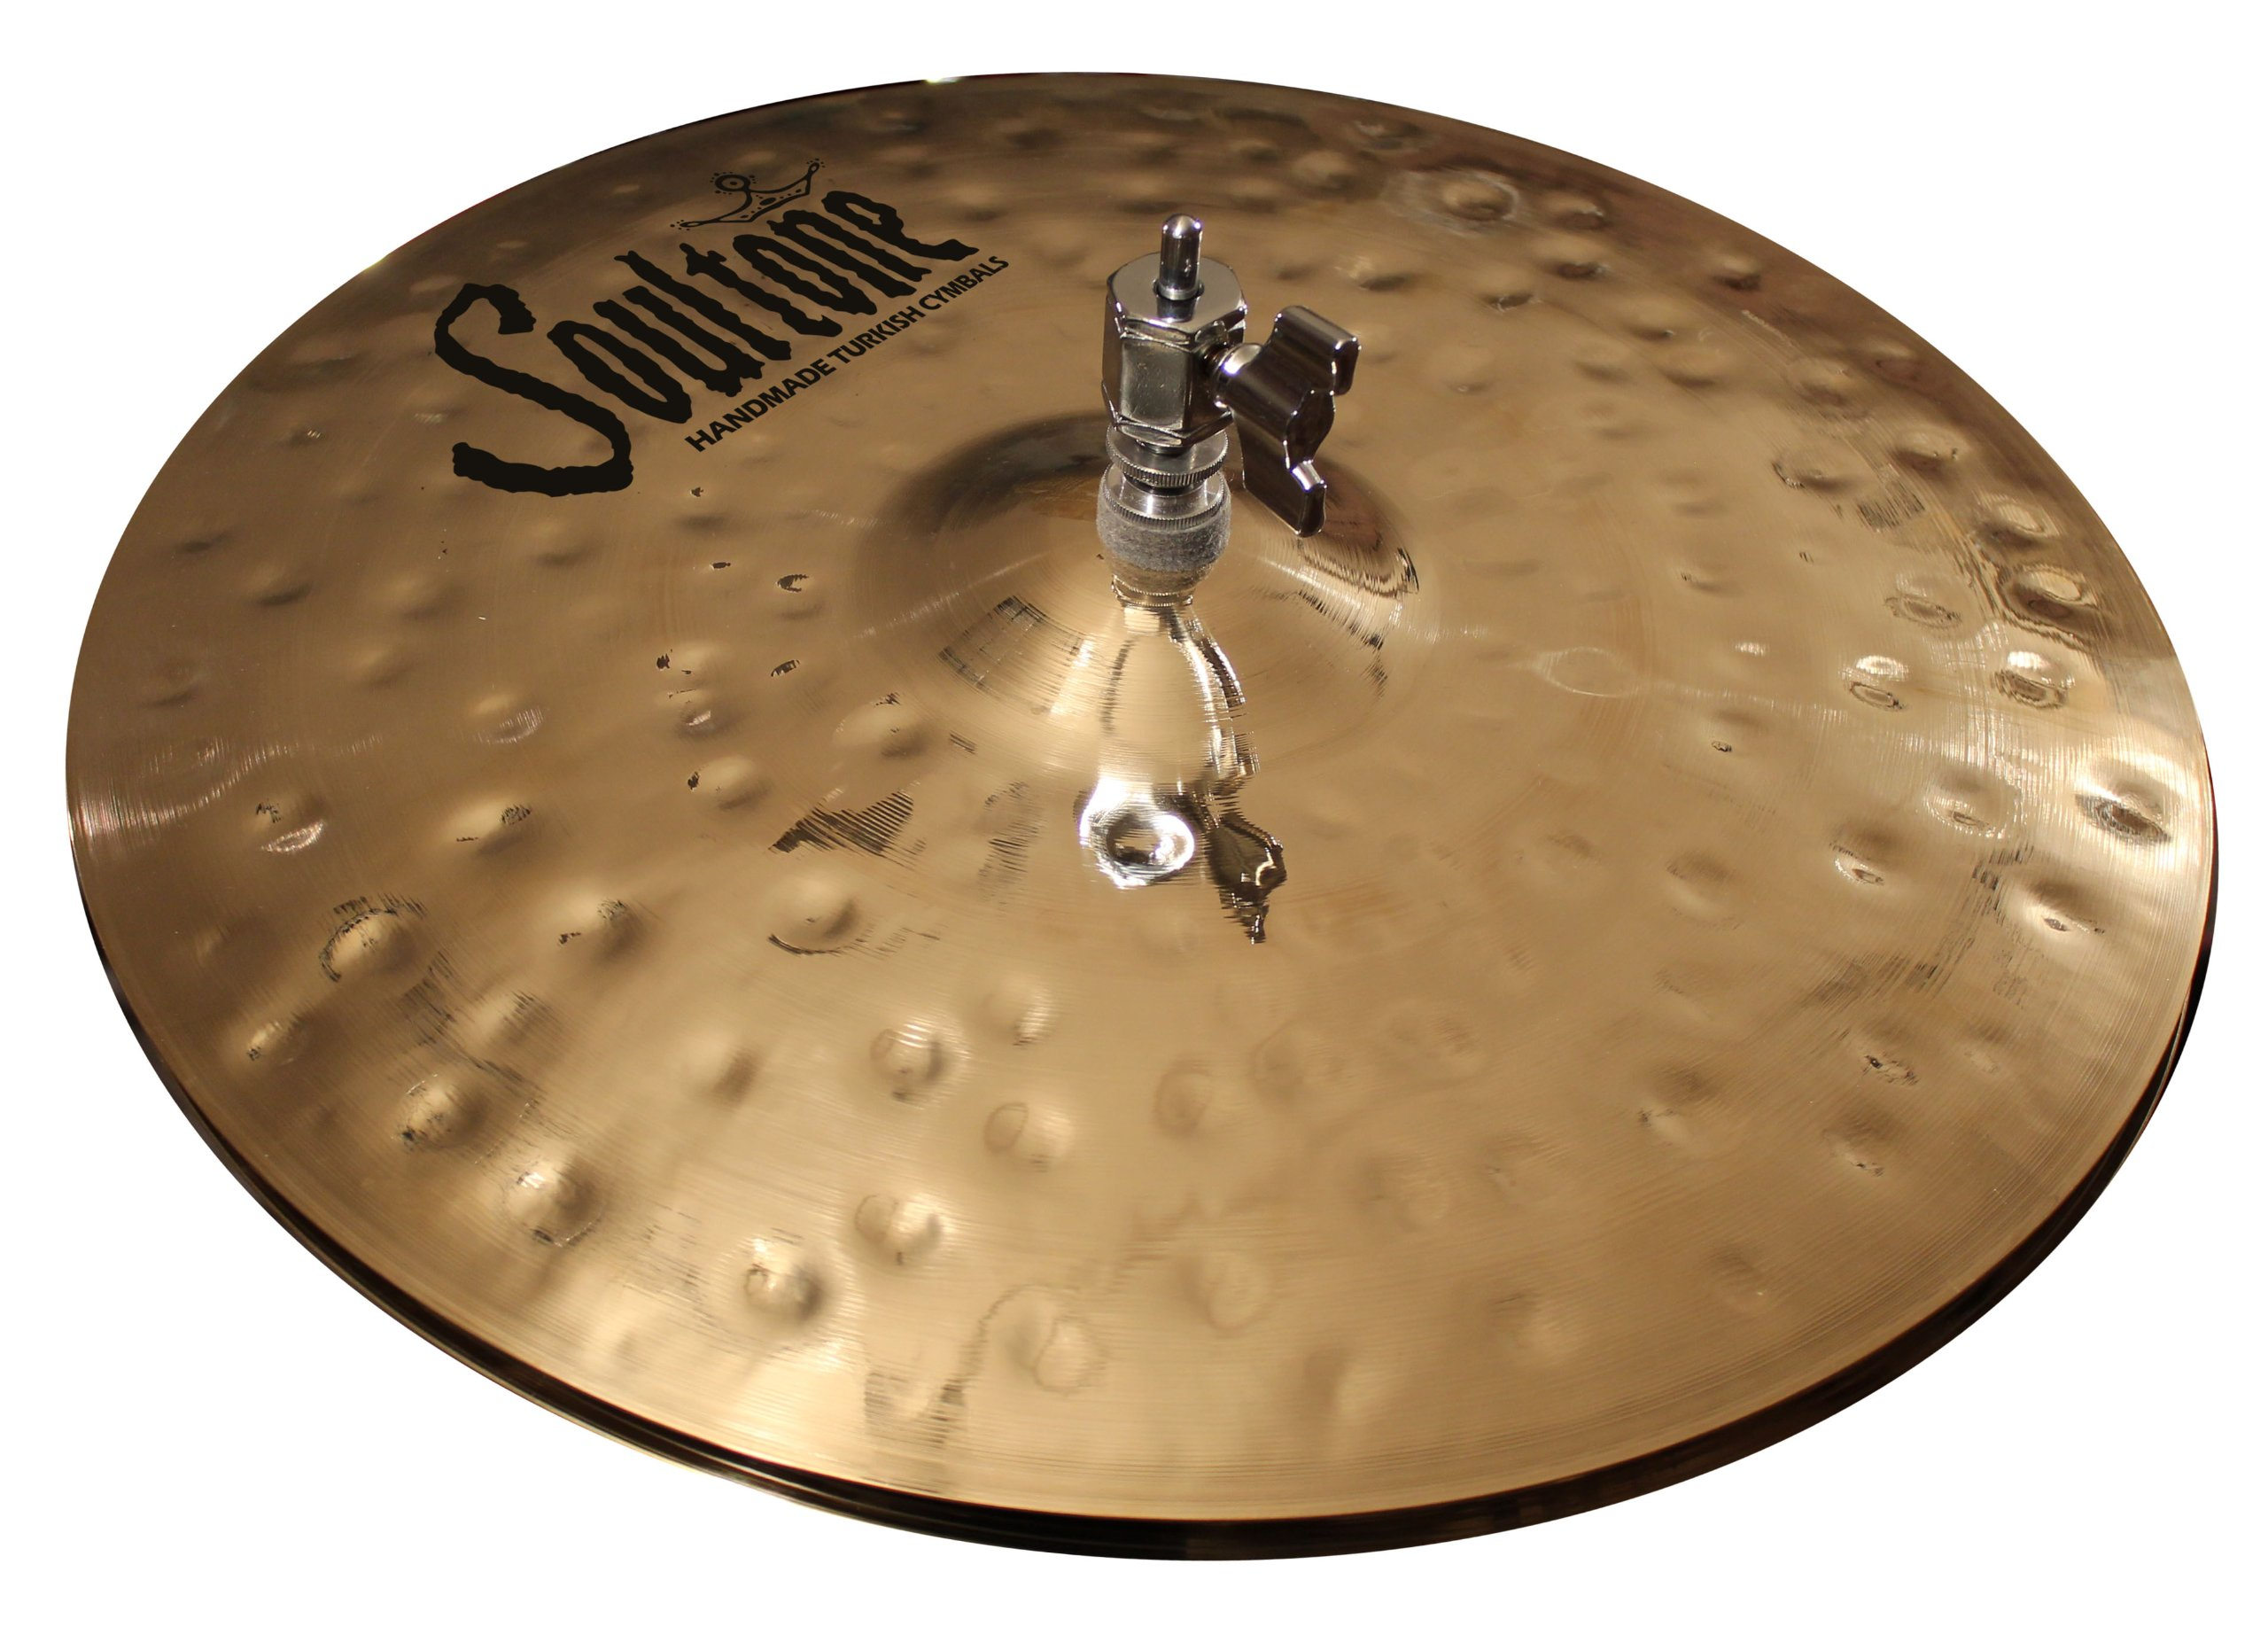 Soultone Cymbals HVHMR-HHT14-14'' Heavy Hammered Hi Hats Pair by Soultone Cymbals